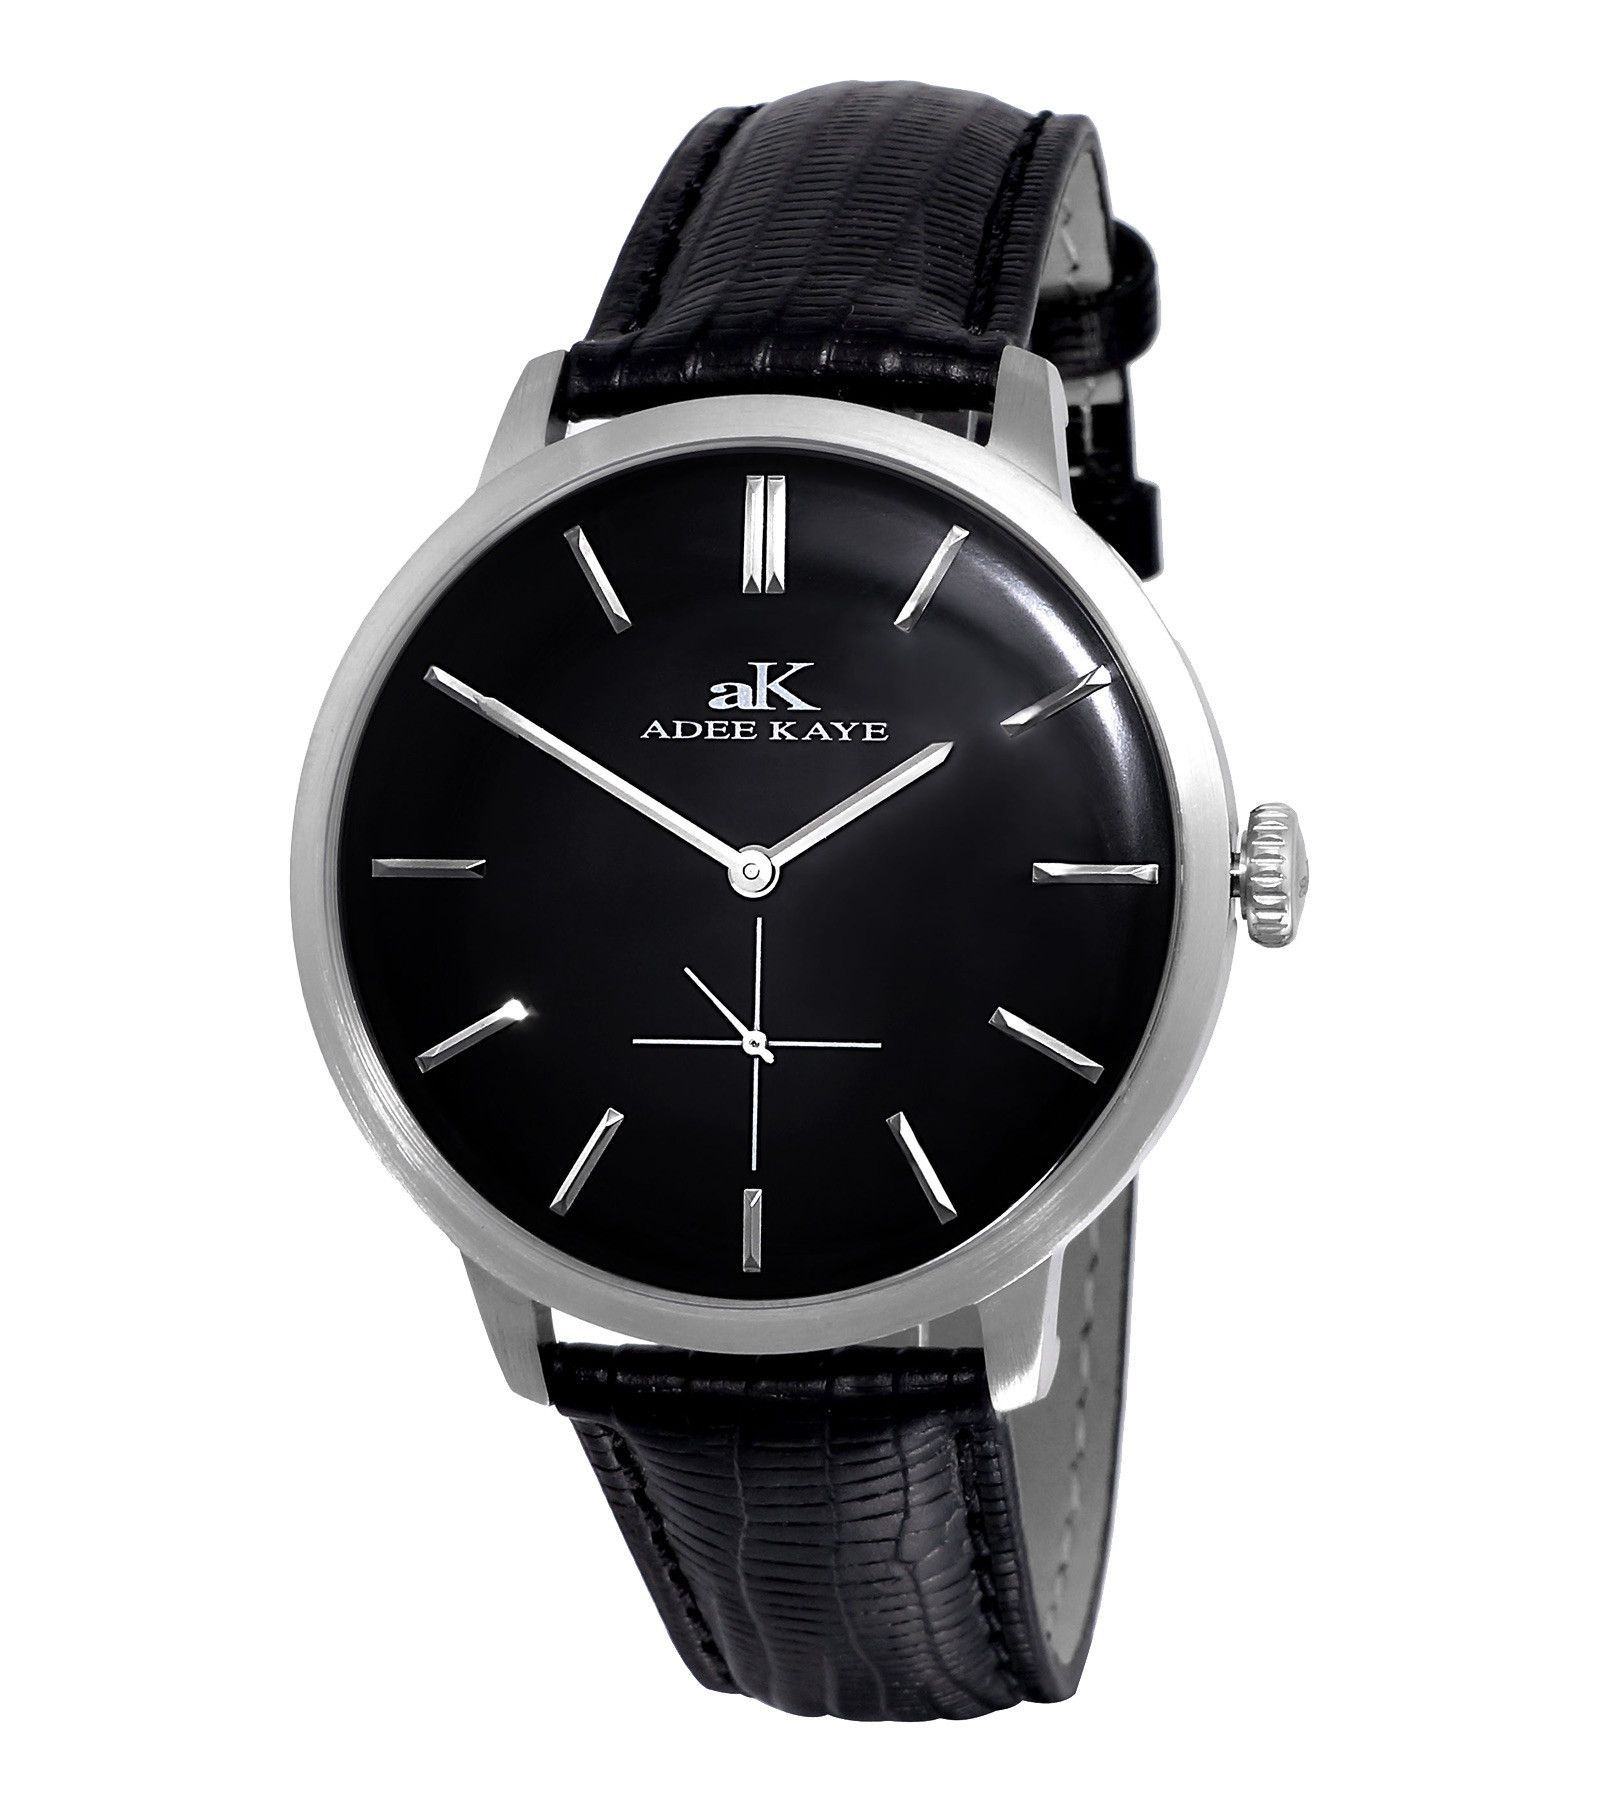 Adee Kaye AK2225-M/BK Men's Watch Black Dial With Black Textured Leather Band